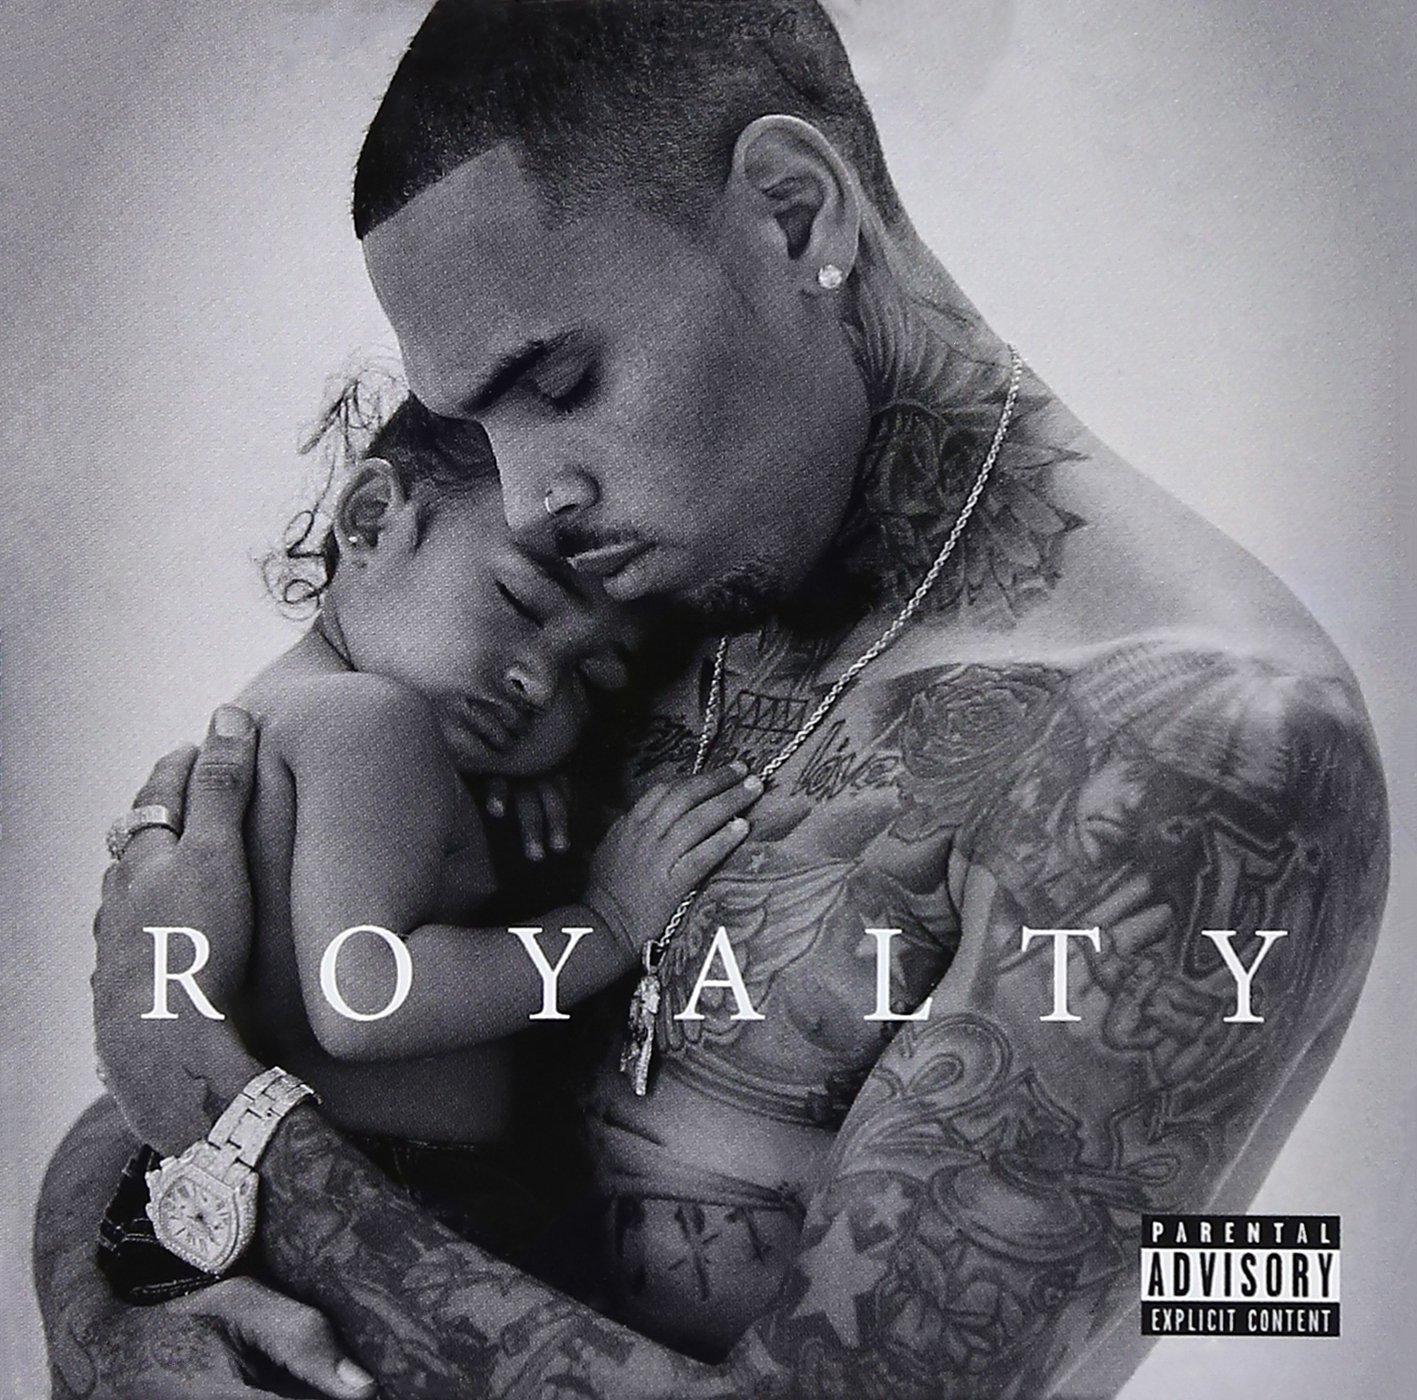 BROWN, CHRIS - Royalty: Deluxe Edition - Amazon.com Music